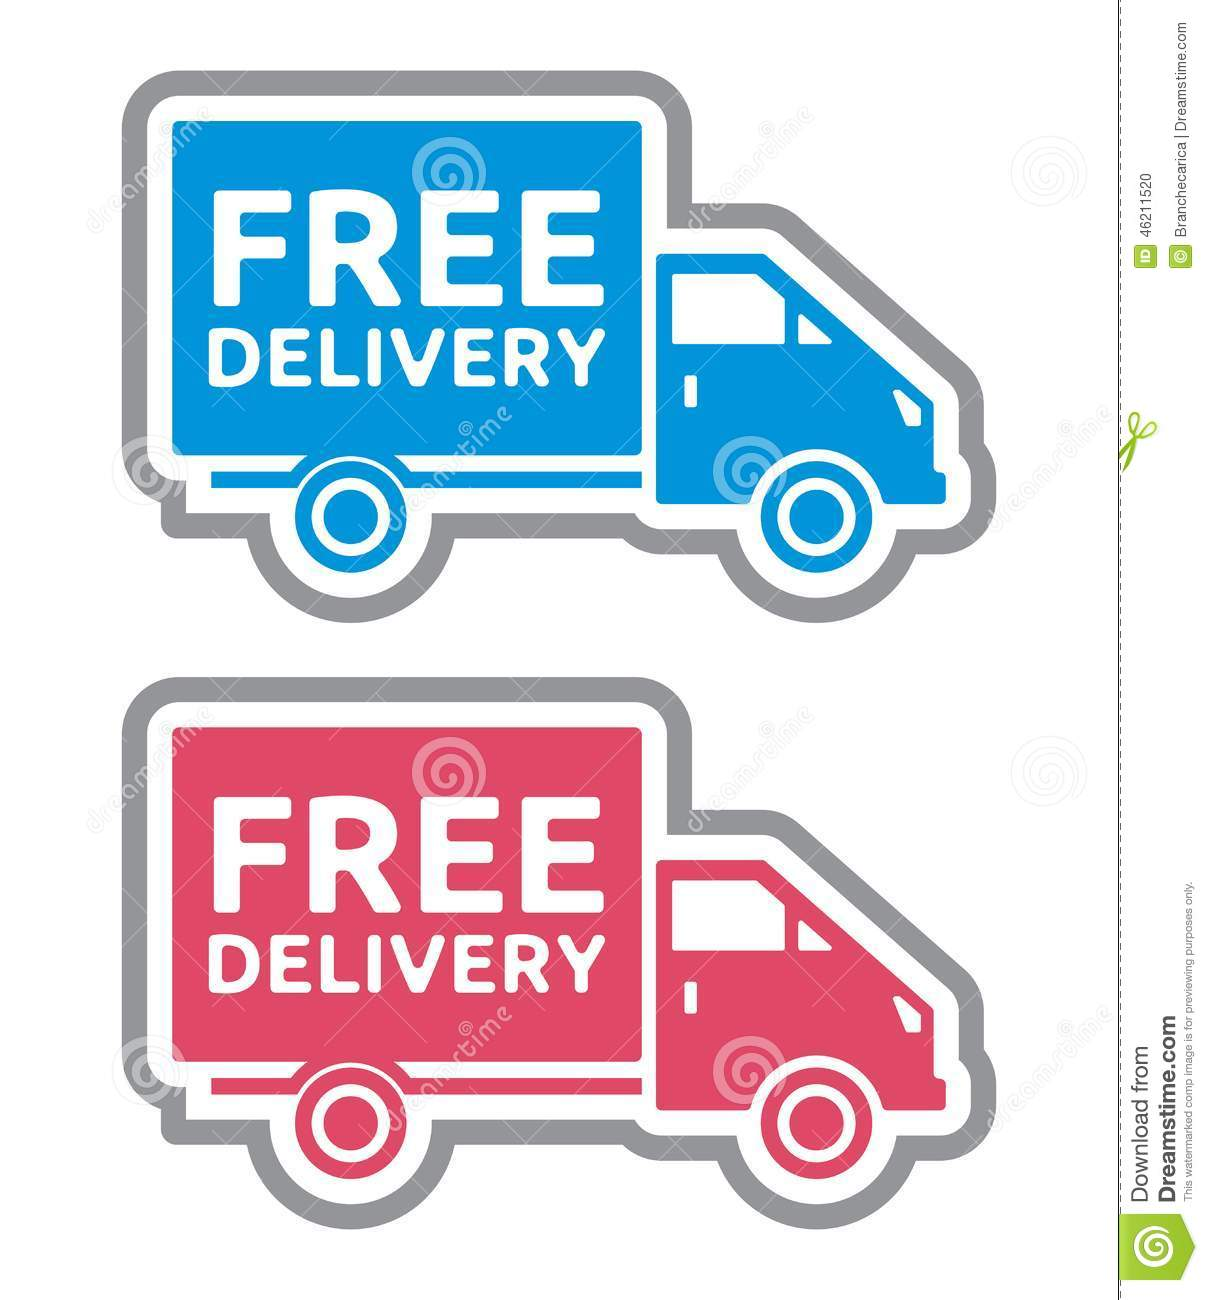 Shipping Delivery: Free Delivery Label Stock Photo